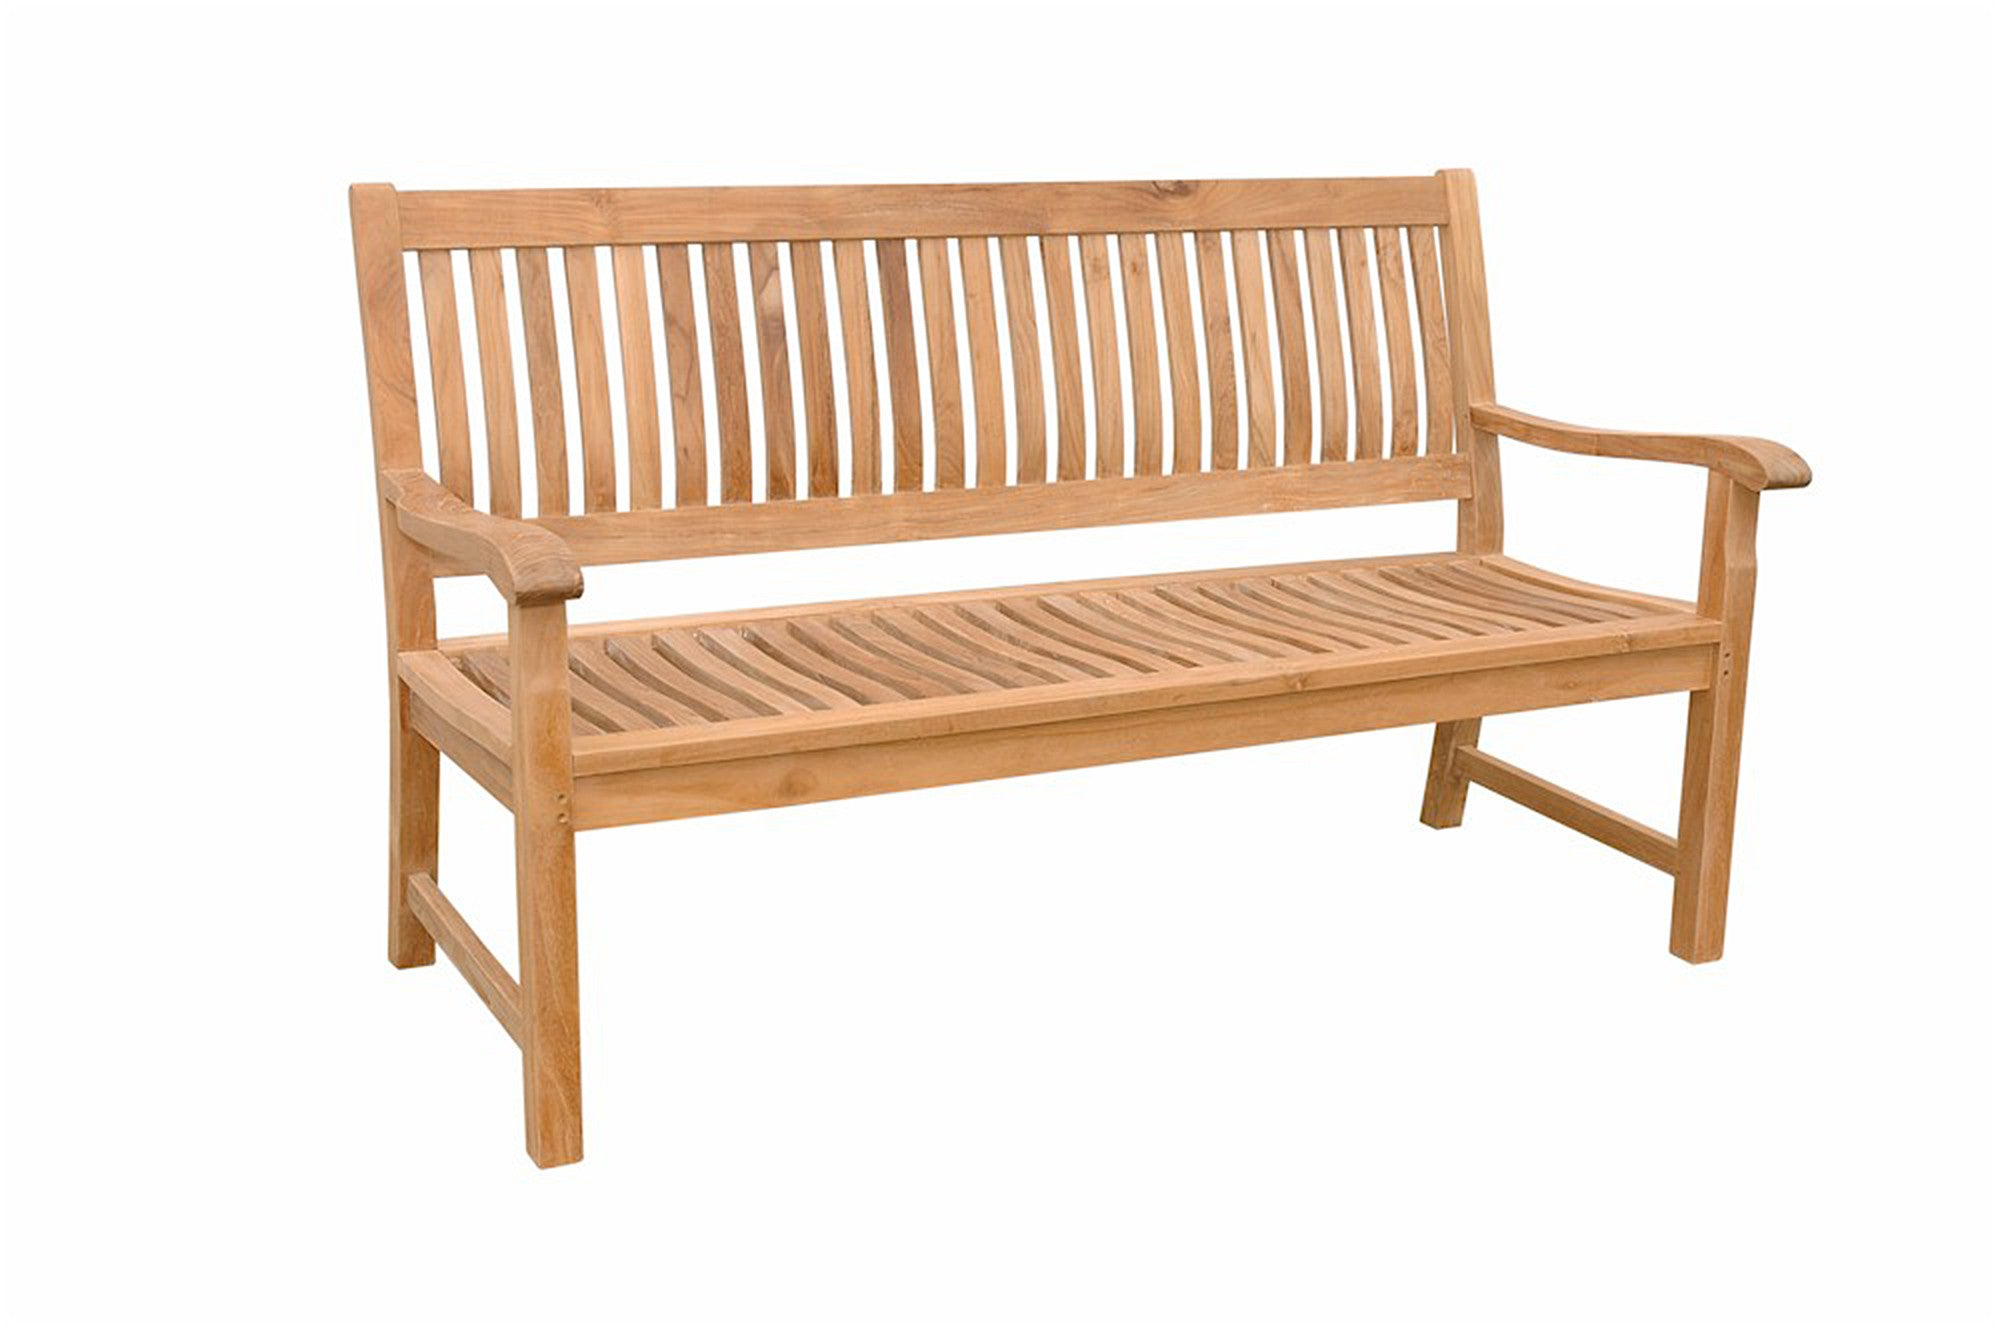 Picture of: Teak Benches Quality Outdoor Benches For Your Patio Or Garden Teakwood Central